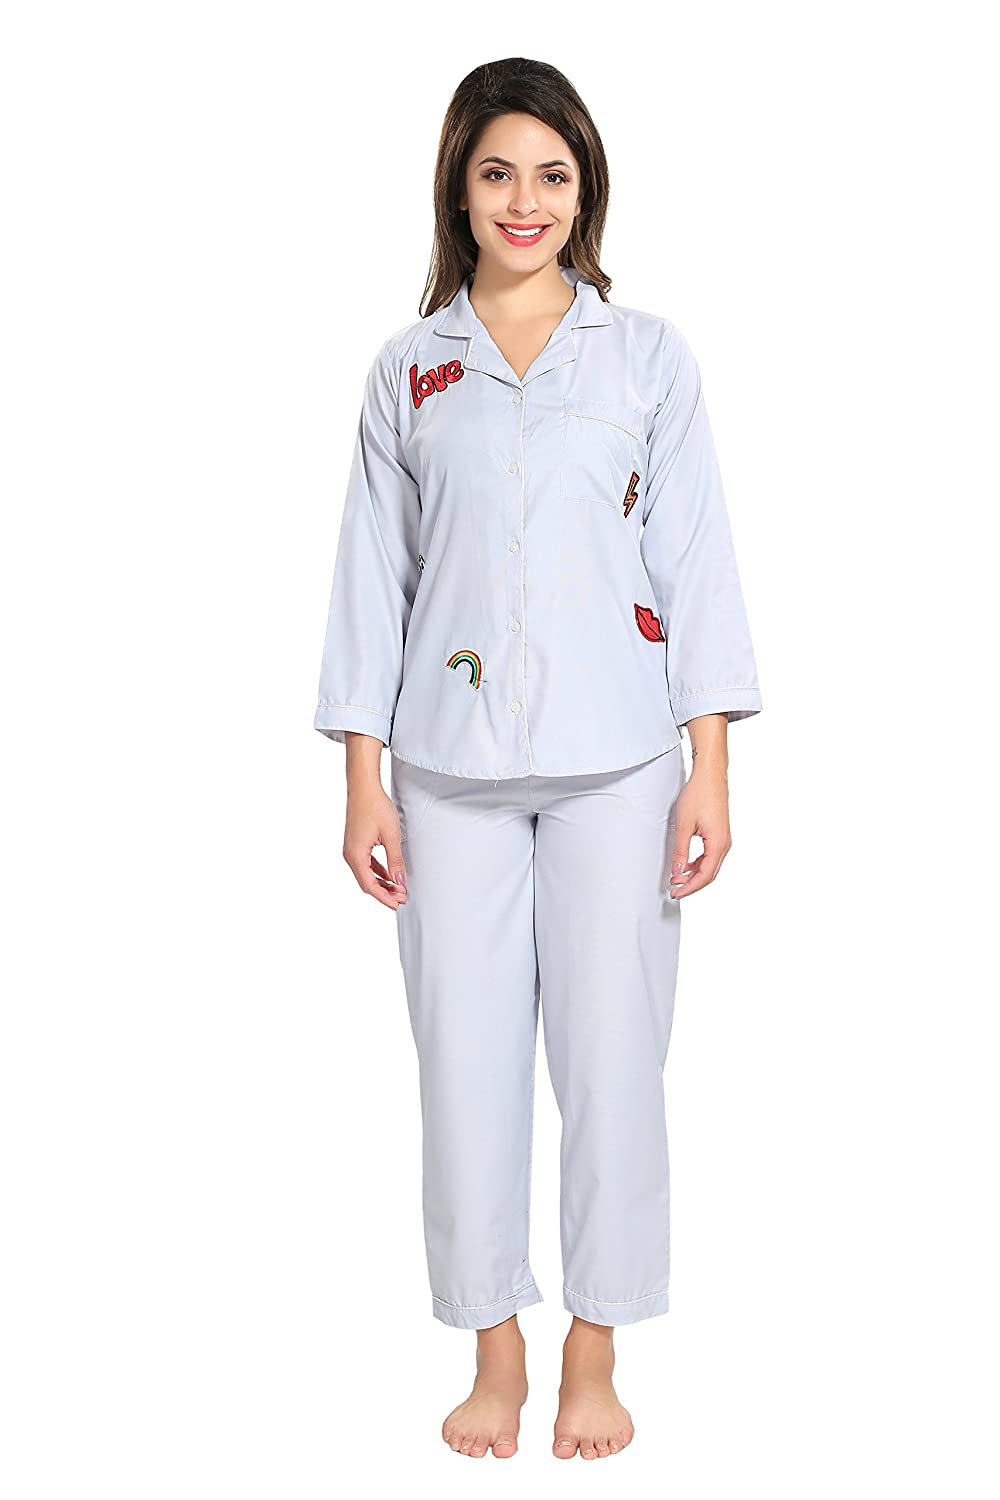 f1c1b887df PIU Women's Cotton Plain with Printed Patches Full Sleeve Night Suit Set  (Light Blue, Medium): Amazon.in: Clothing & Accessories